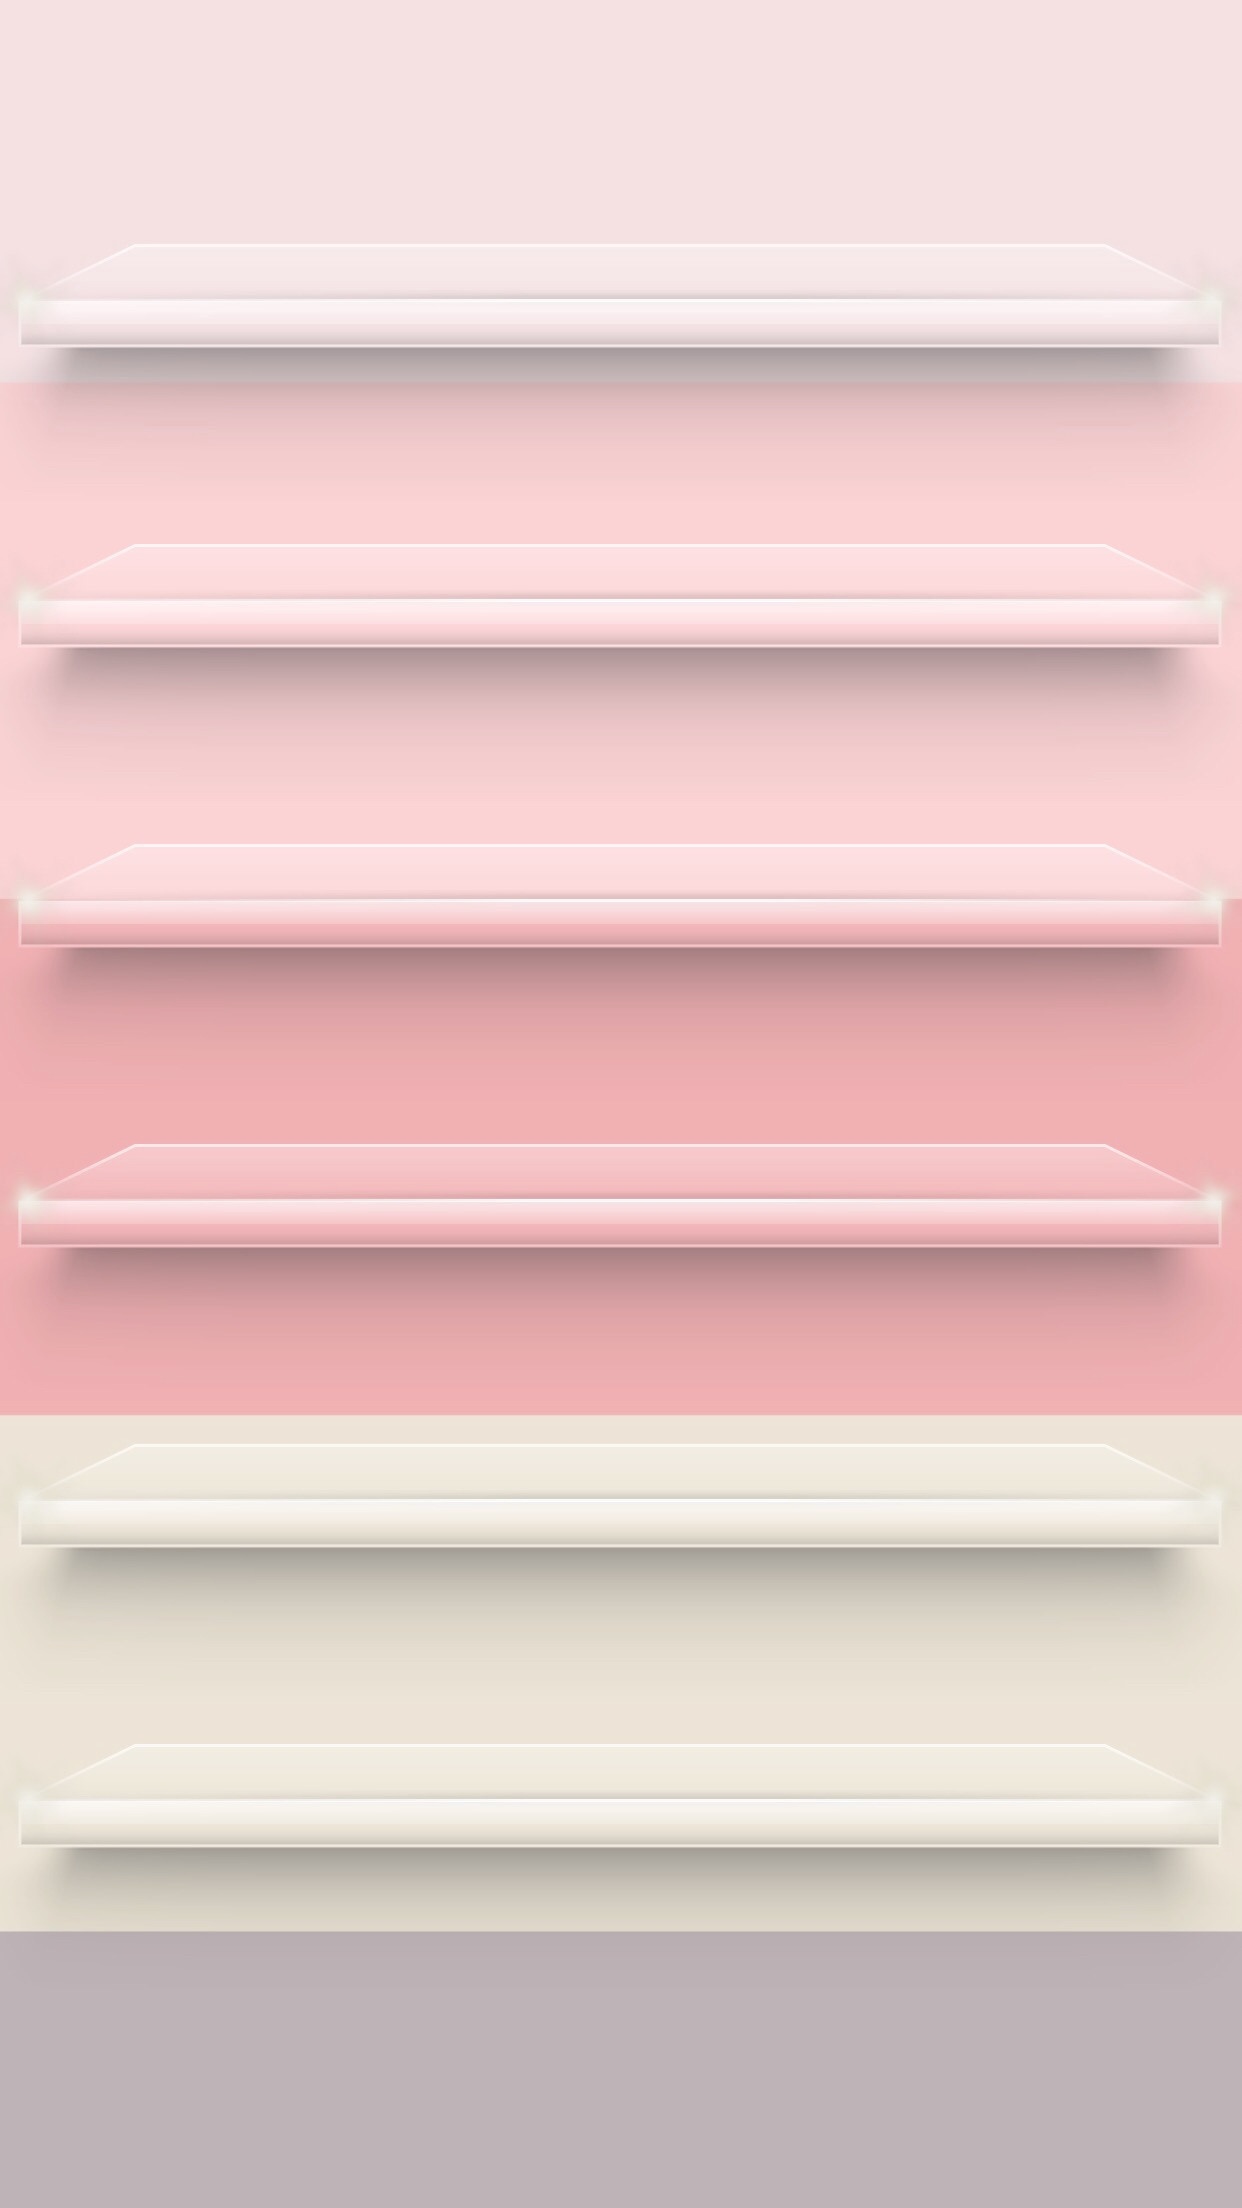 Top Wallpaper Home Screen Girly - 624175  Picture_896340.jpg